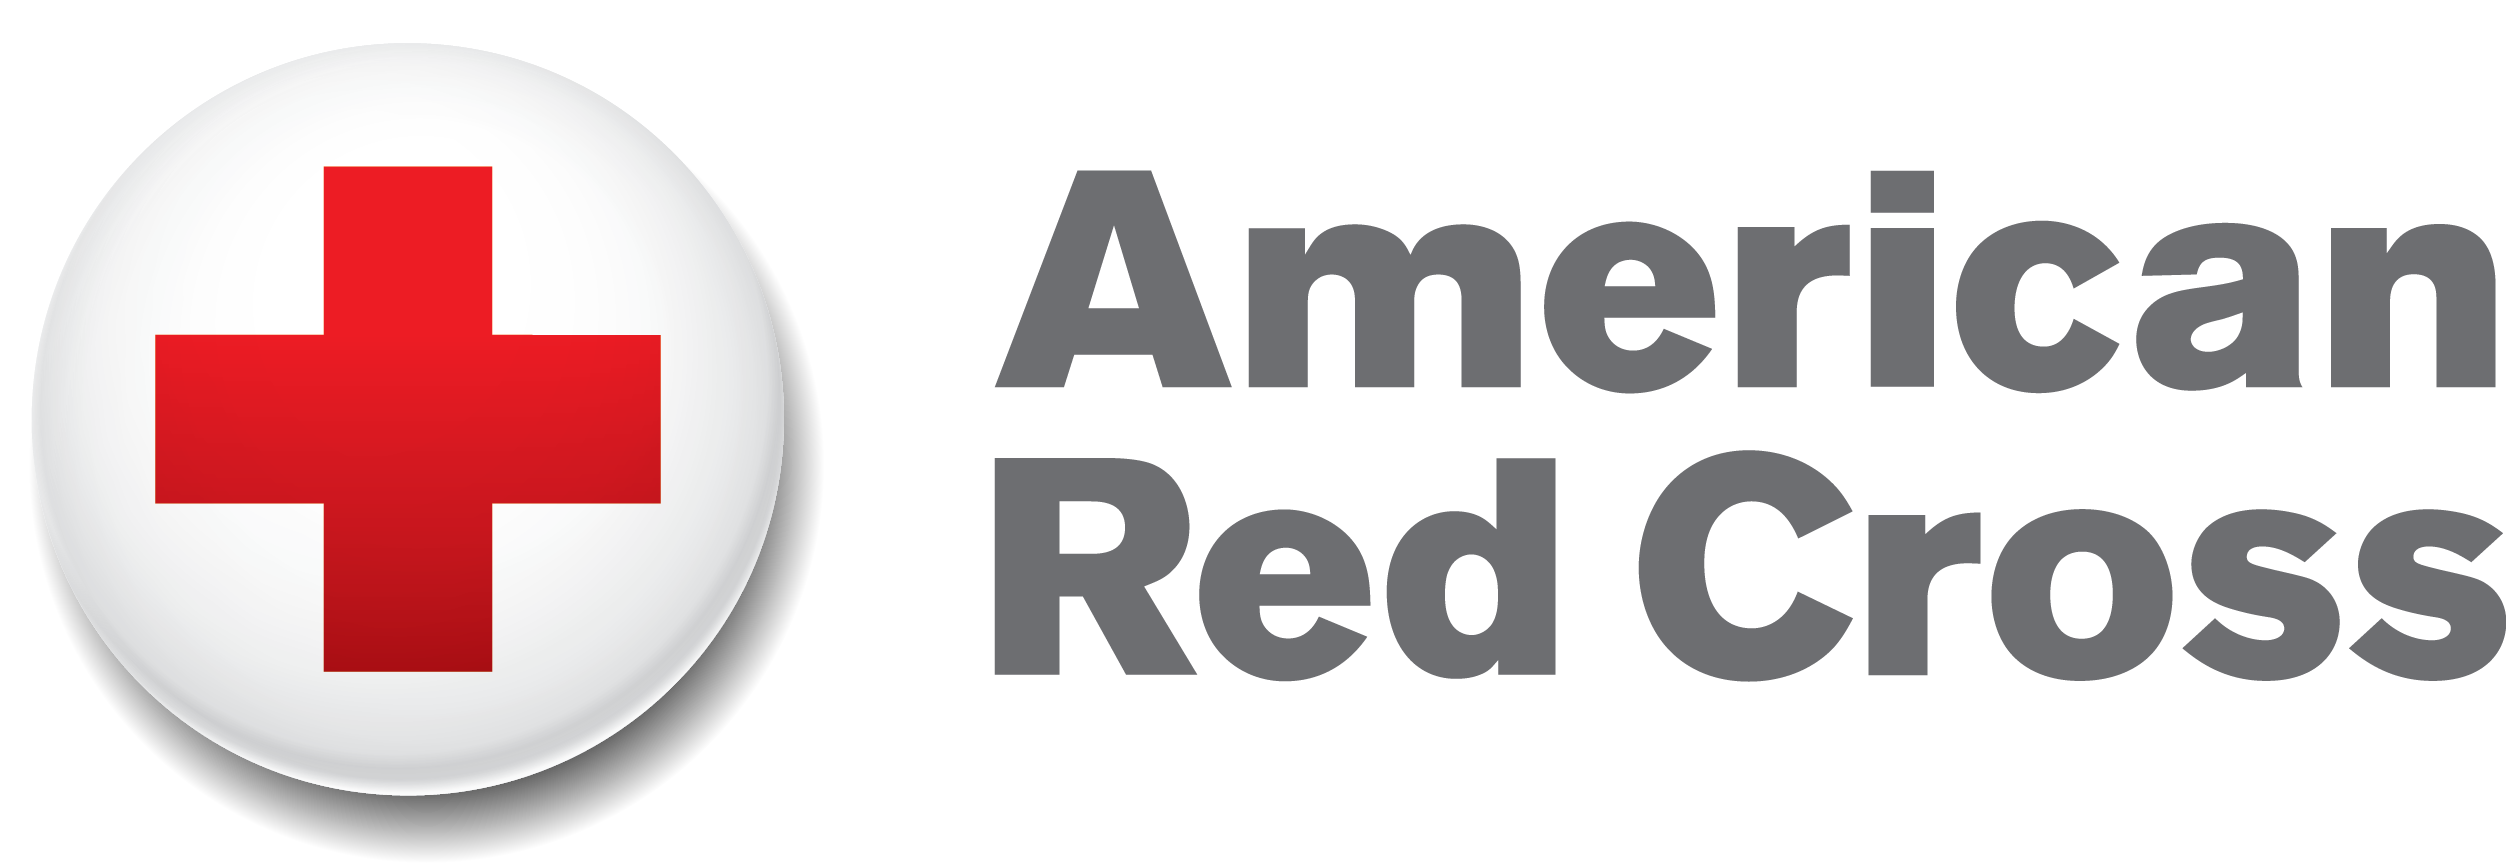 American red cross png. Logo transparent arc free